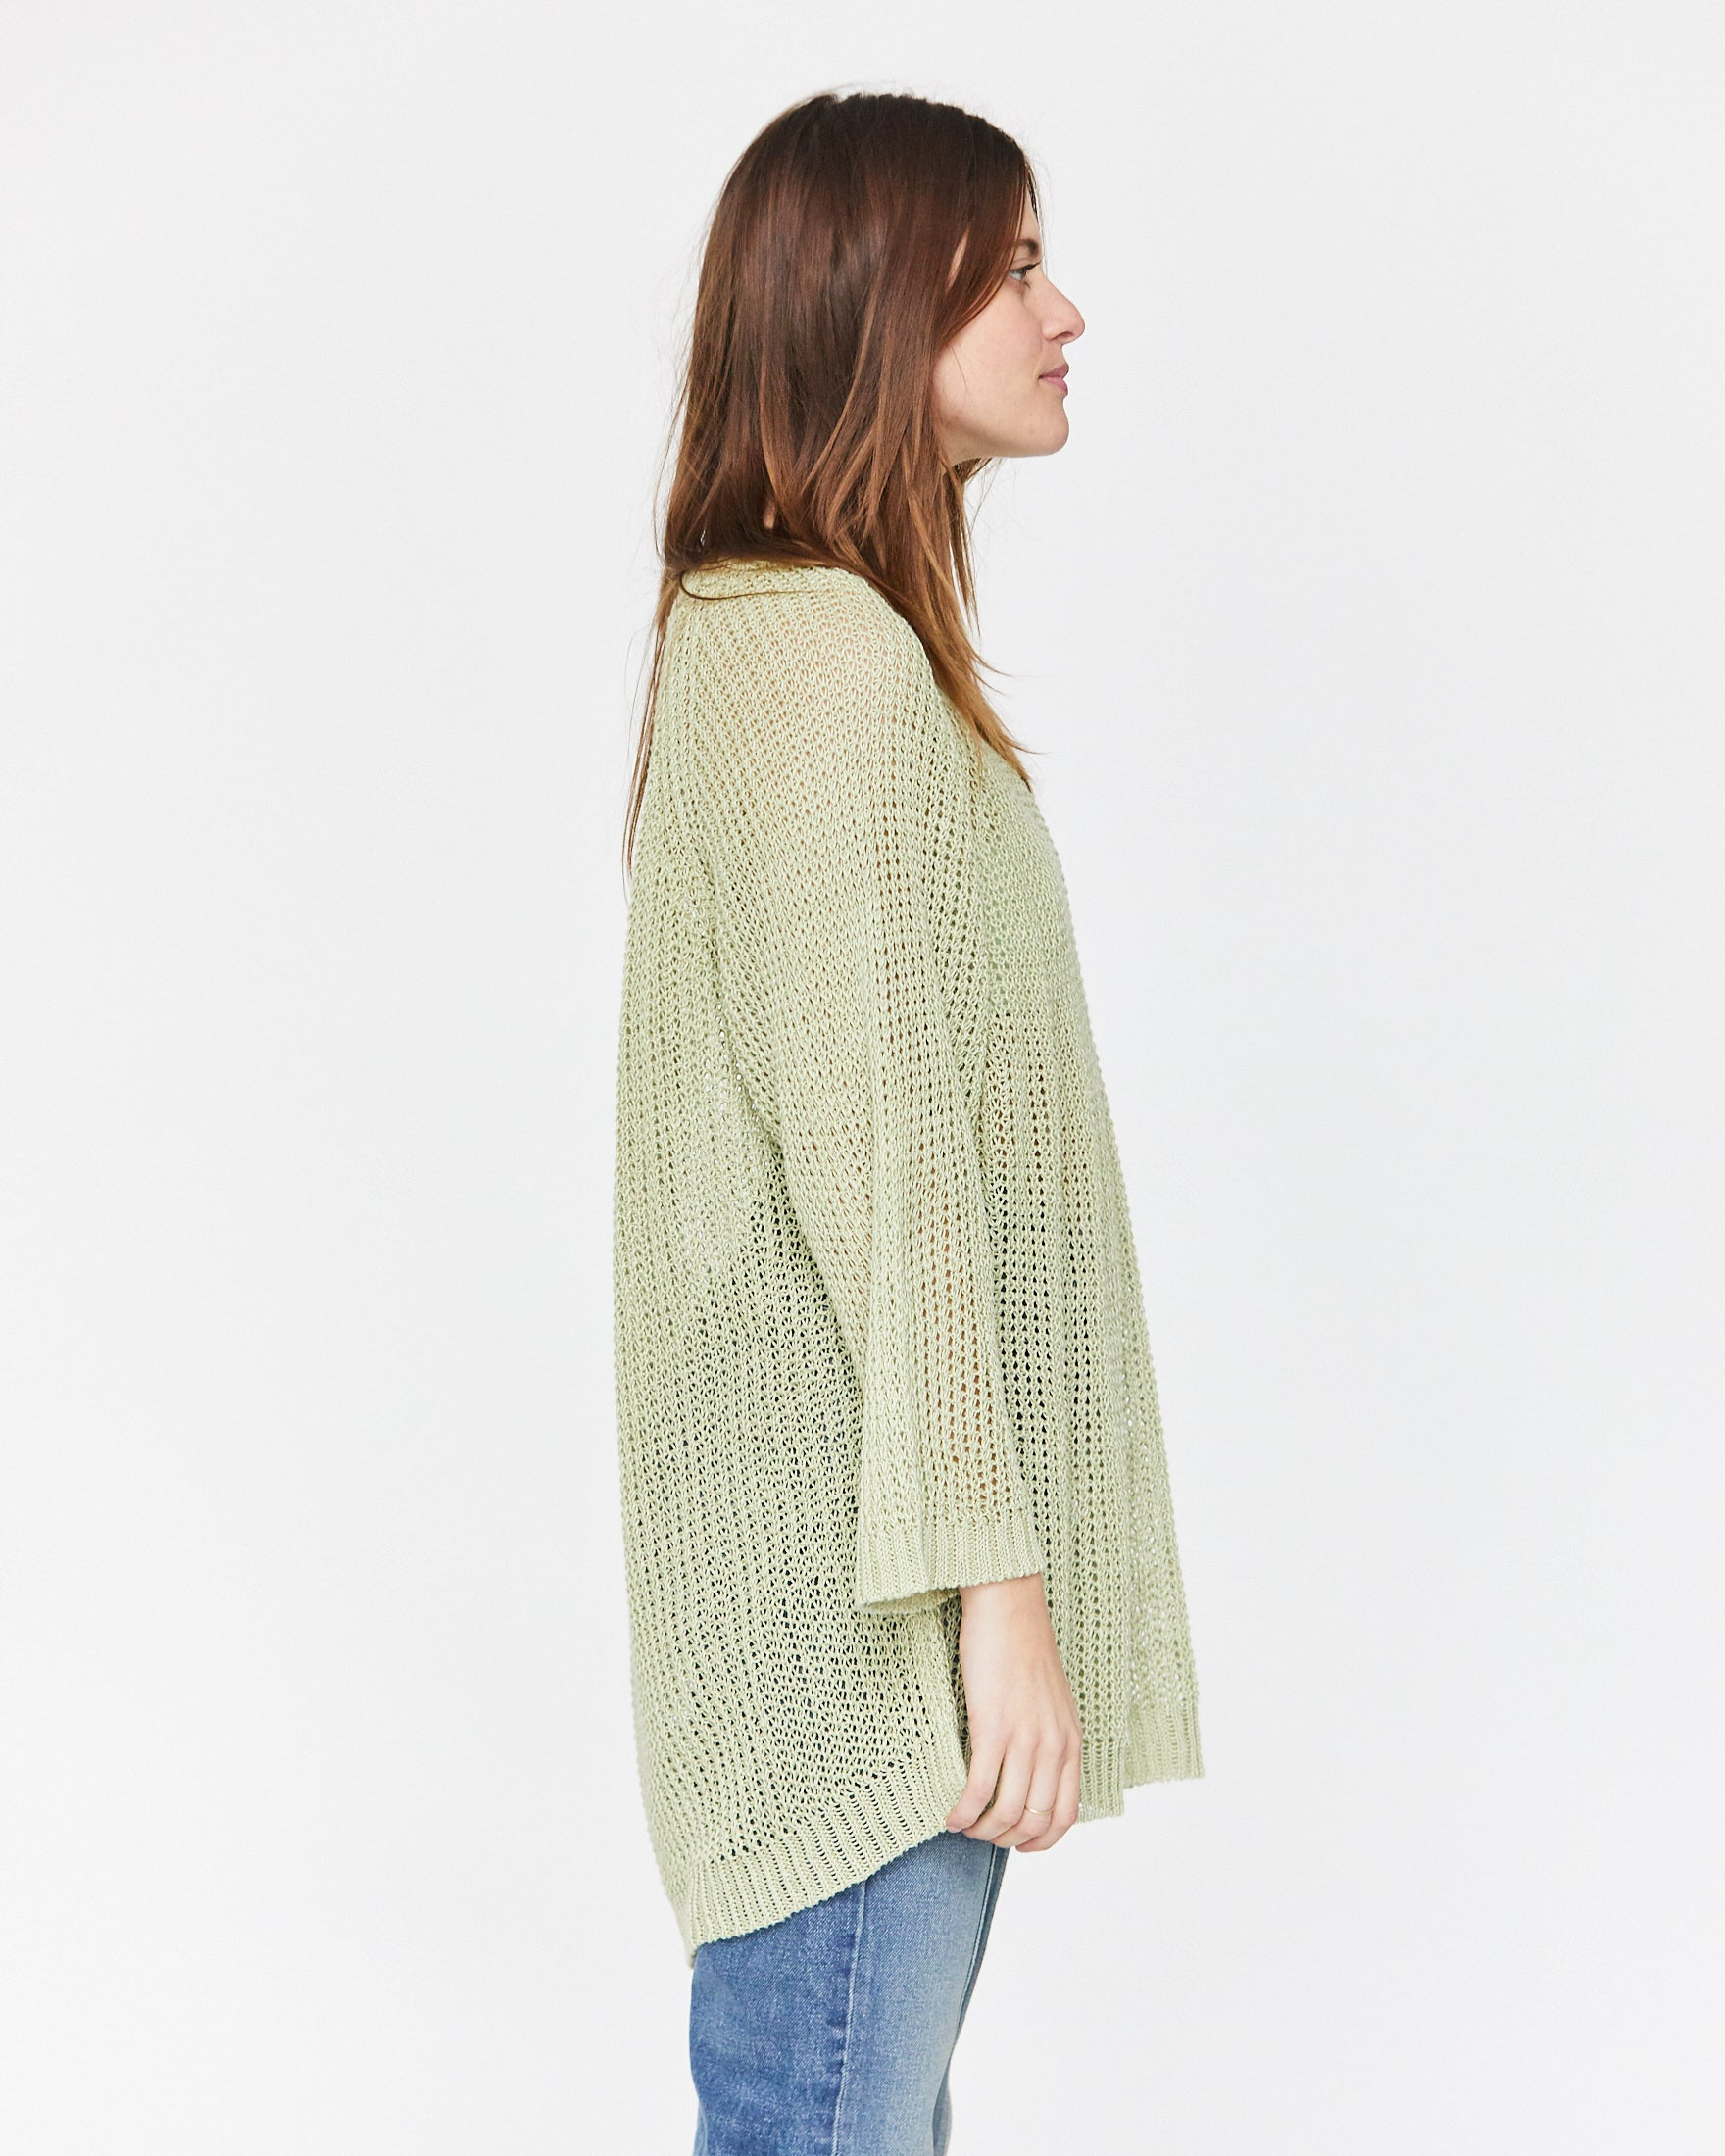 LUCY LINEN SWEATER - SEA GLASS